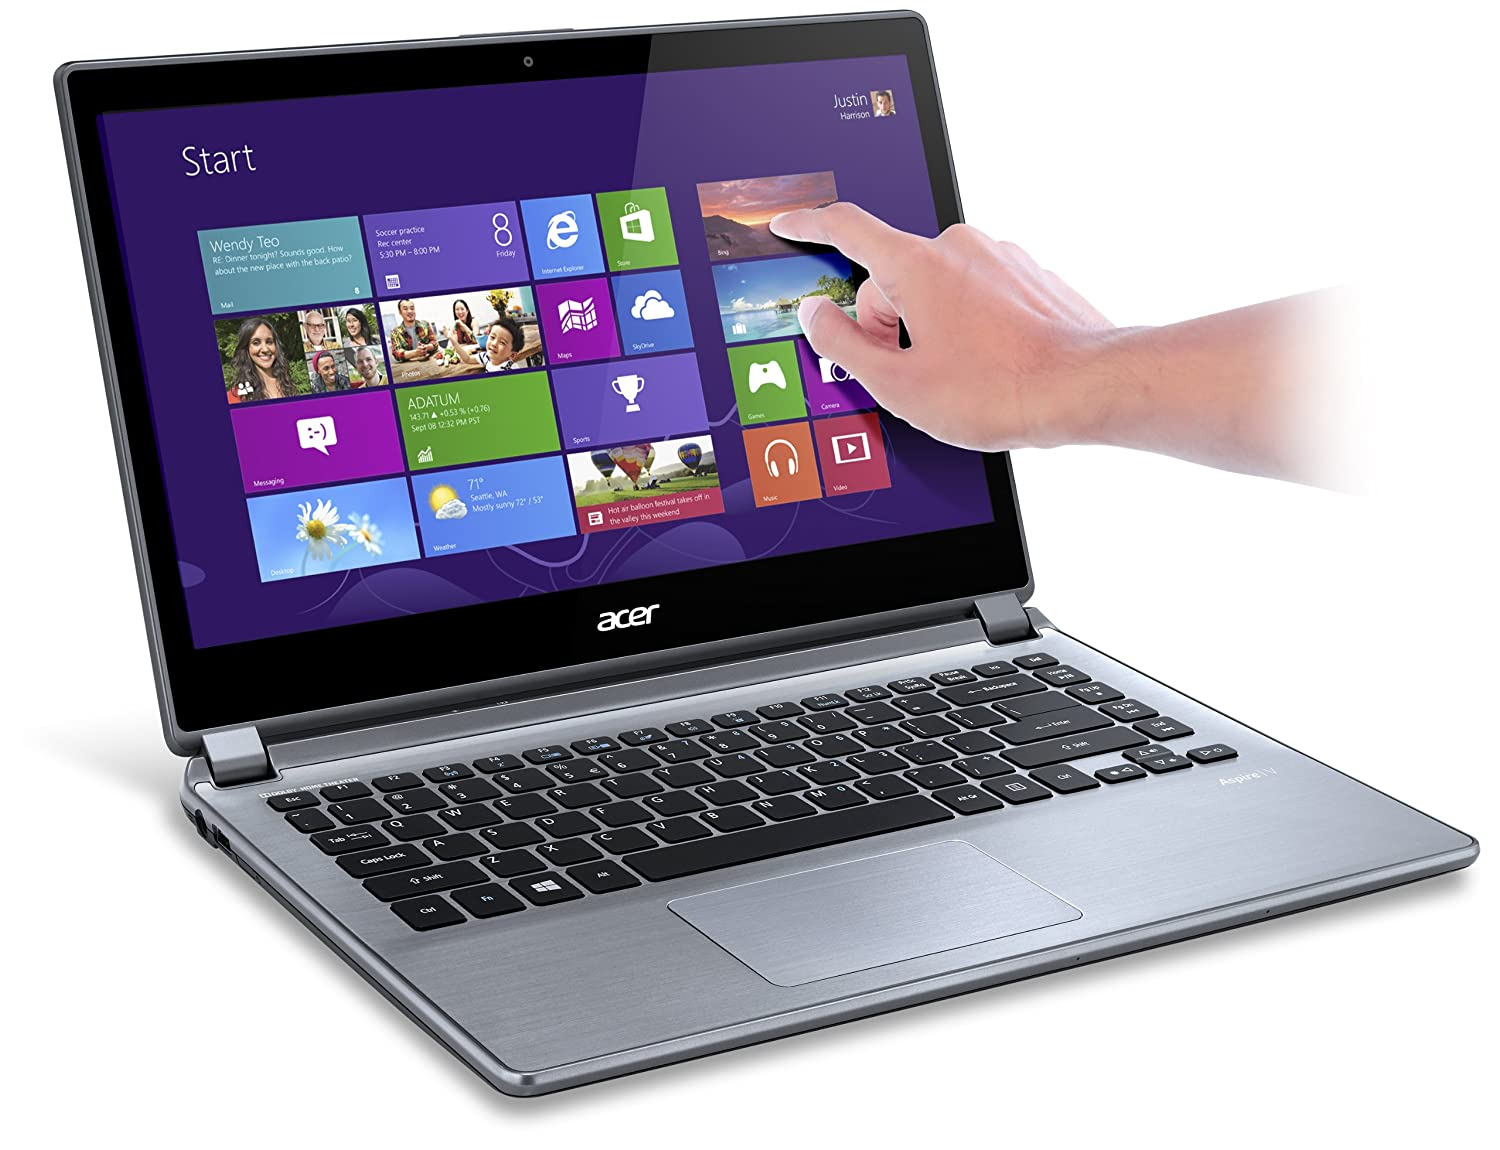 Acer-Aspire-V7-482P-5864-14-Inch-Touchscreen-Ultrabook-Cool-Steel-